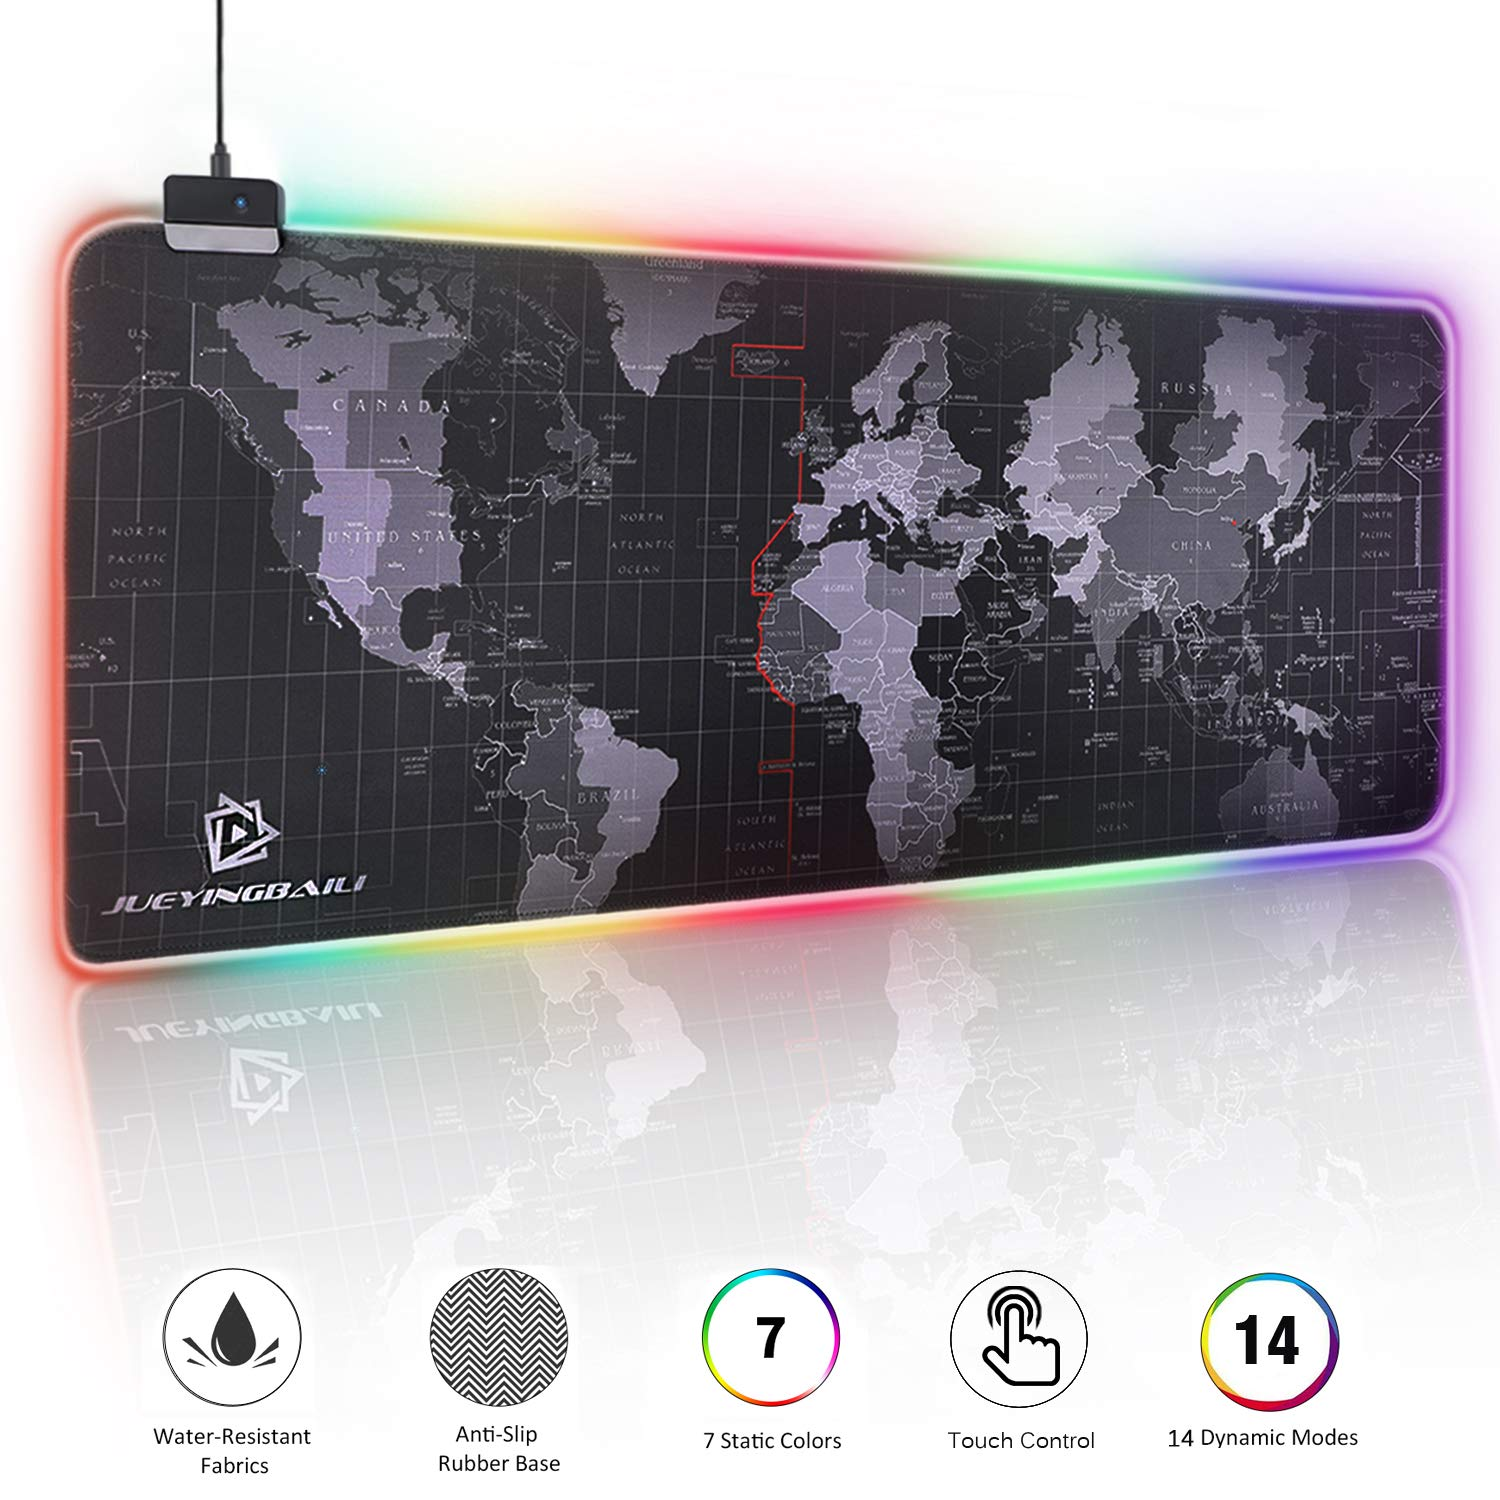 Gaming Mouse Mat Pad Extra Large Water-Resistant with Non-Slip Rubber Base